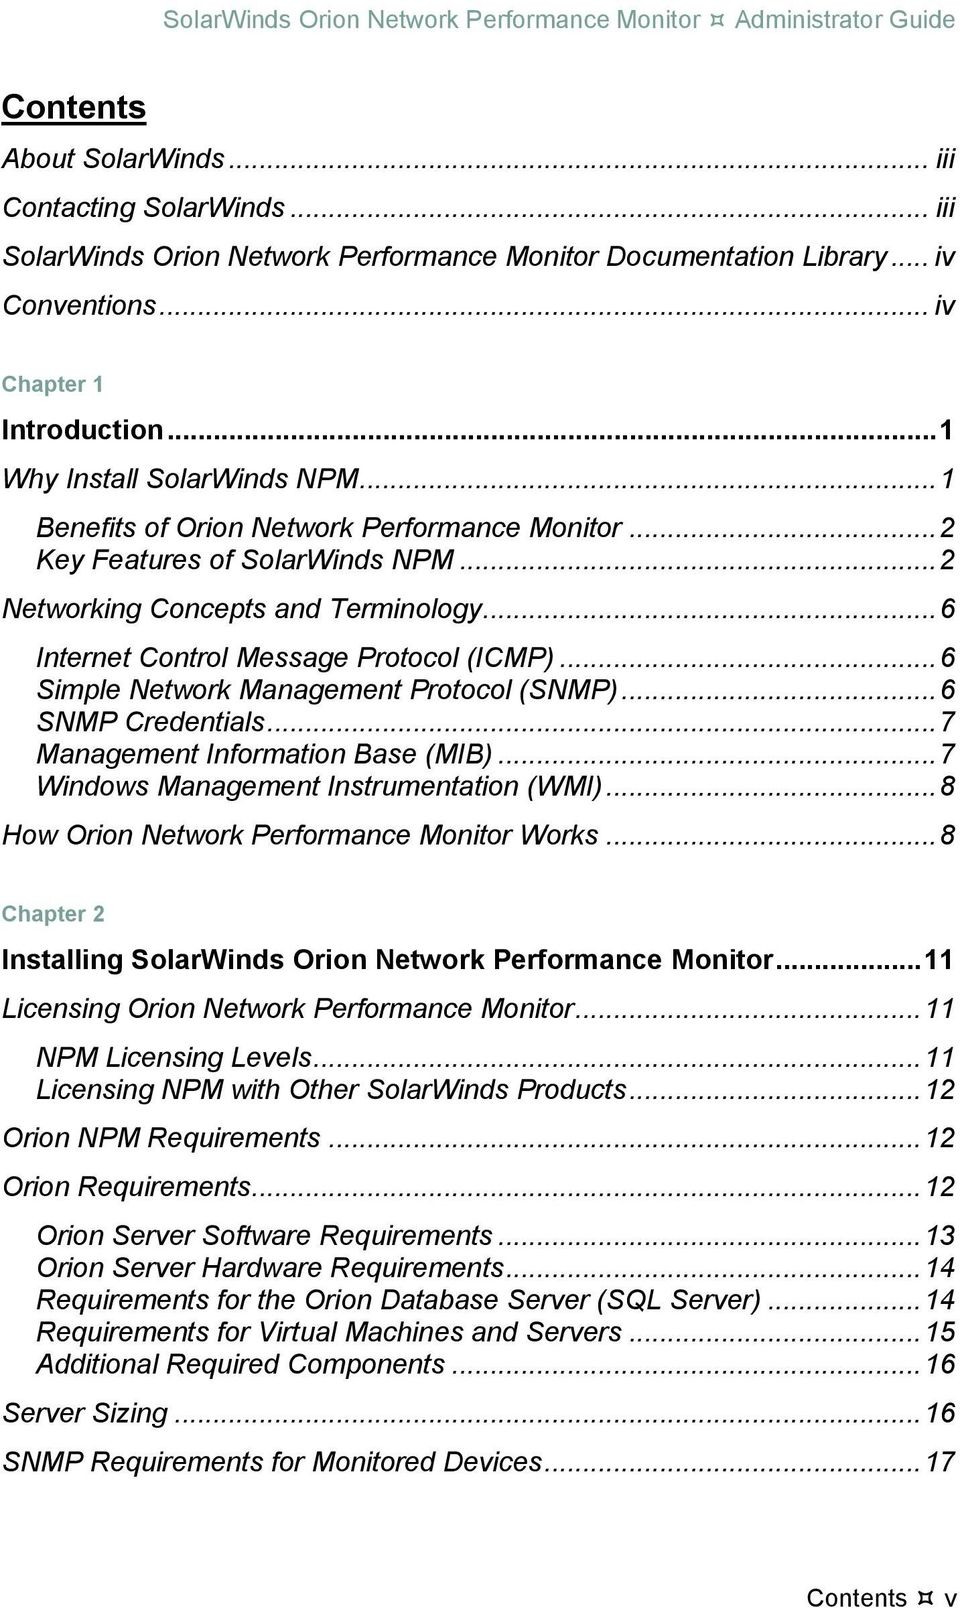 solarwinds orion network performance monitor administrator guide pdf rh docplayer net solarwinds npm installation guide solarwinds npm administrator guide